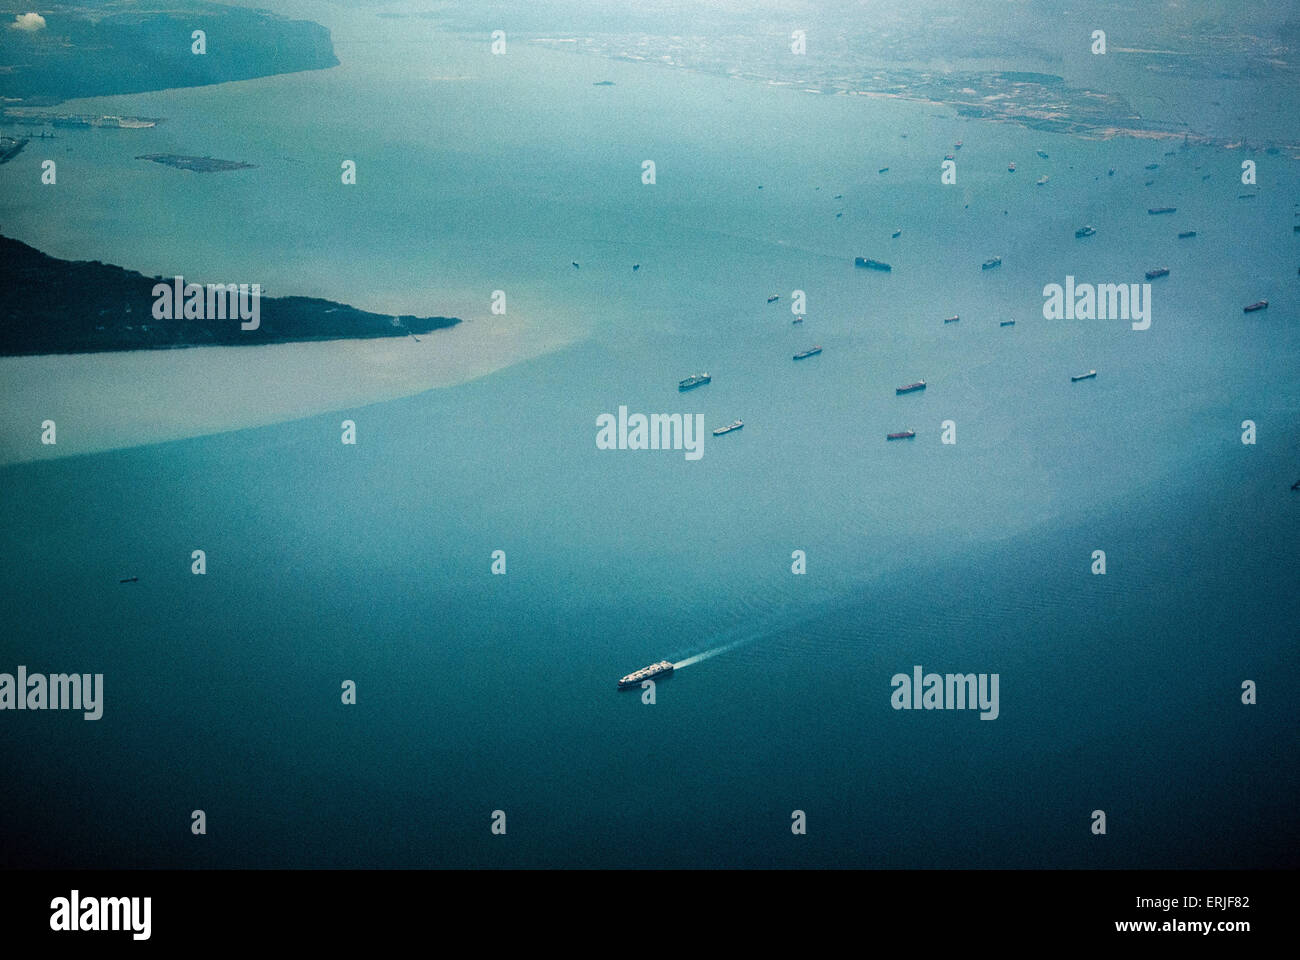 Aerial photo of ships and Southern tip of Malaysia - Stock Image